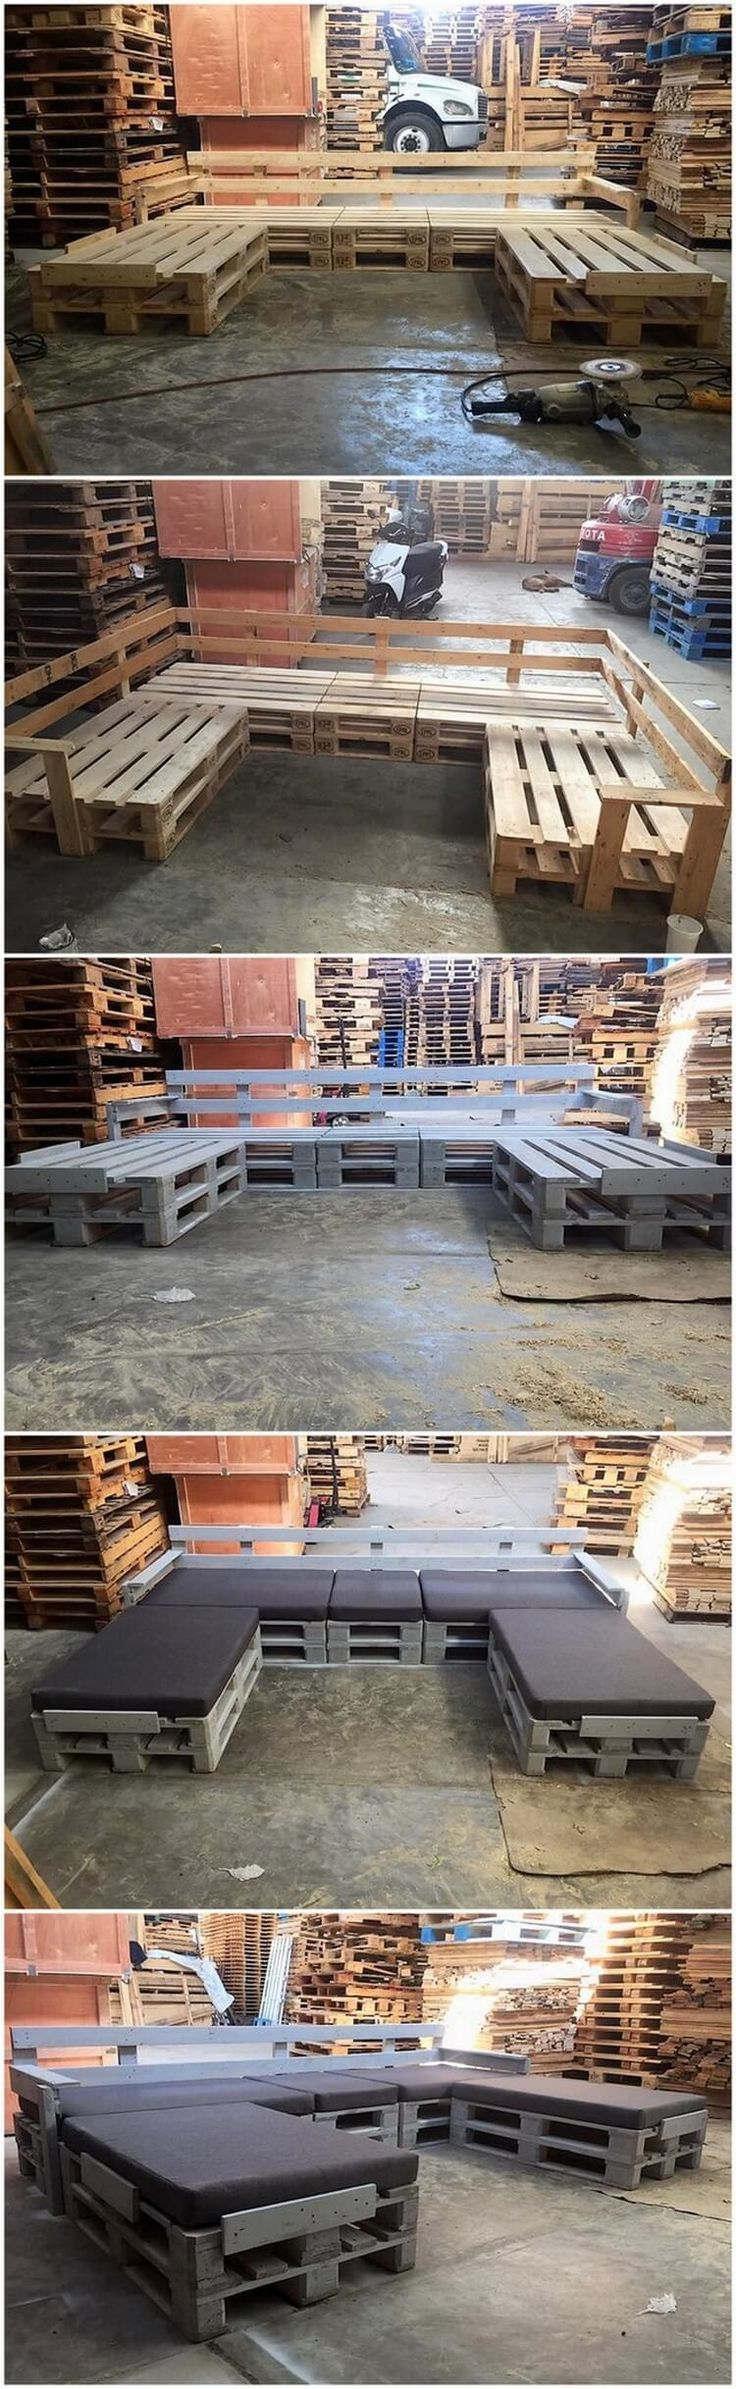 U Formige Holzpalette Couch Set Couch Formige Holzpalette Diy Holzpaletten Holzpalette Couch Holzpaletten Palettenholz